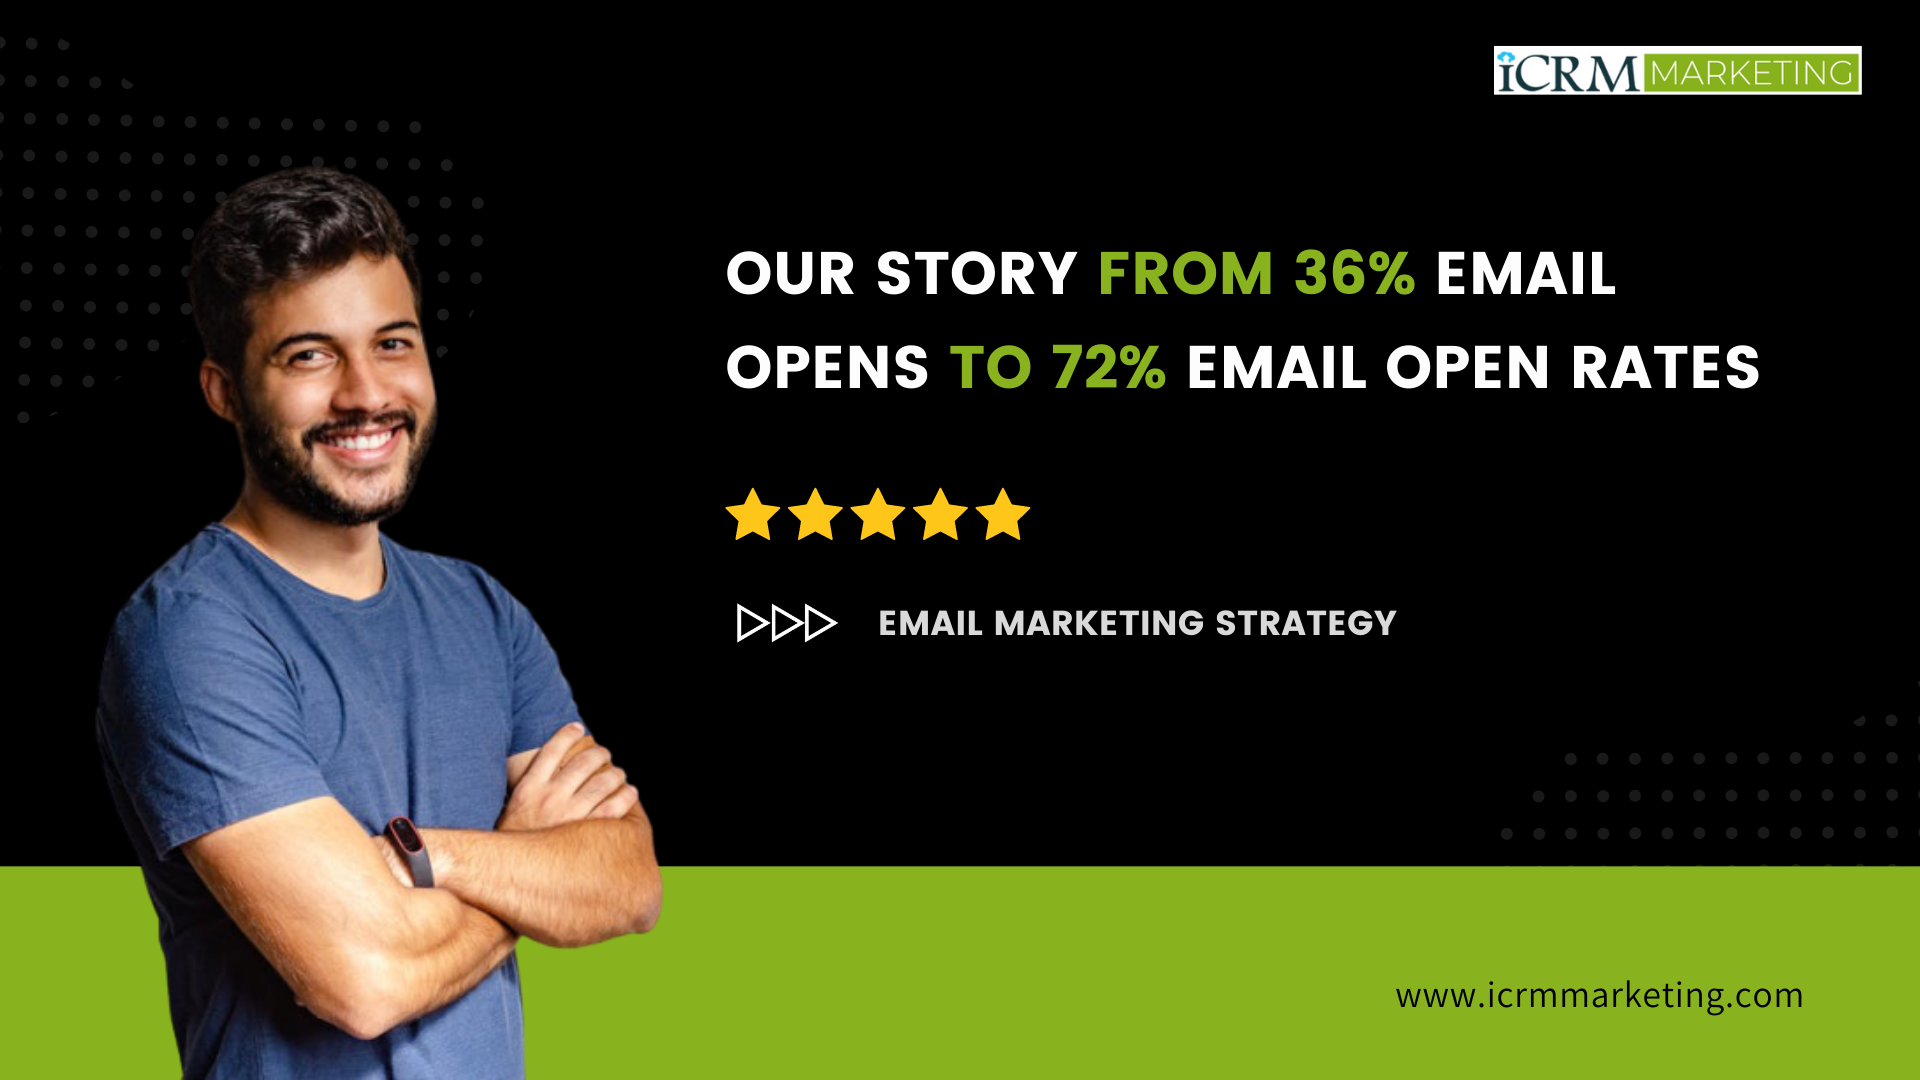 Our story from 36% email opens to 72% email open rates